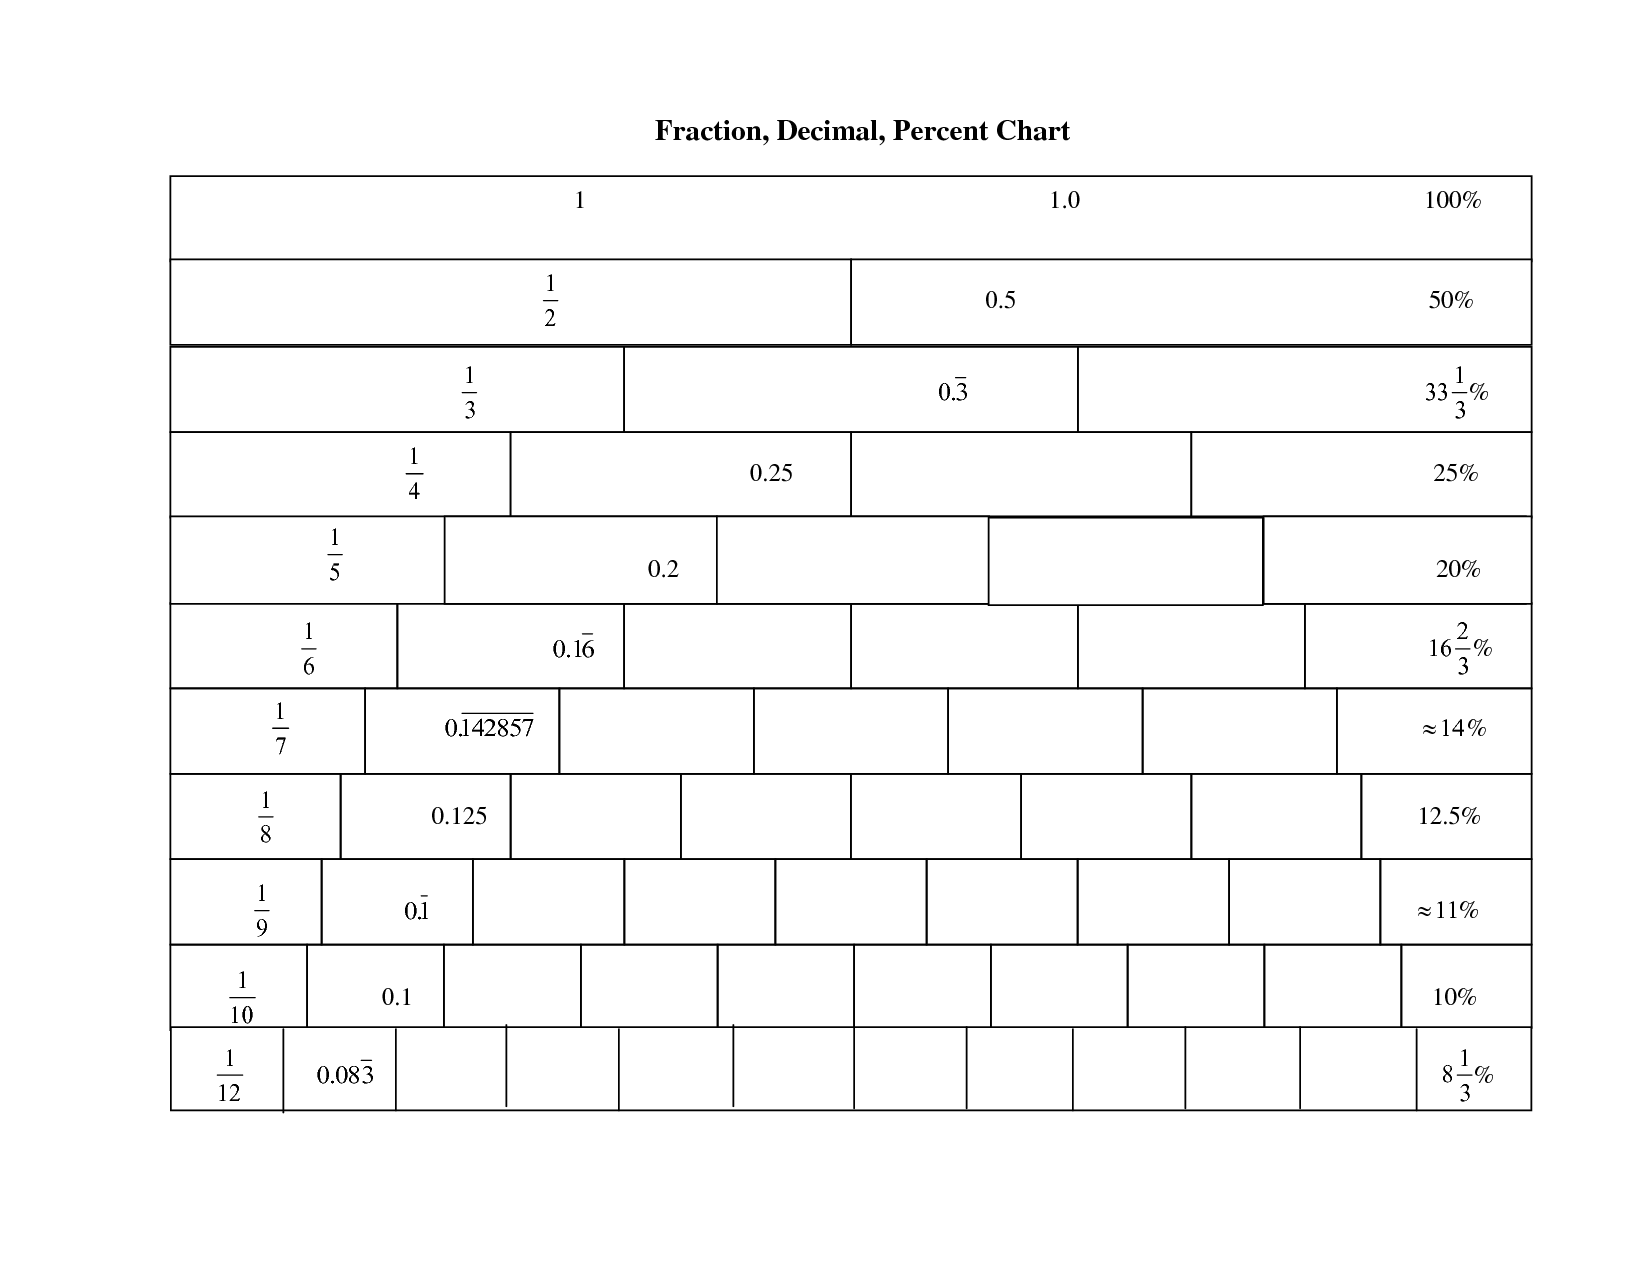 worksheet Comparing Fractions And Decimals Worksheet fraction decimal number line percent chart chart